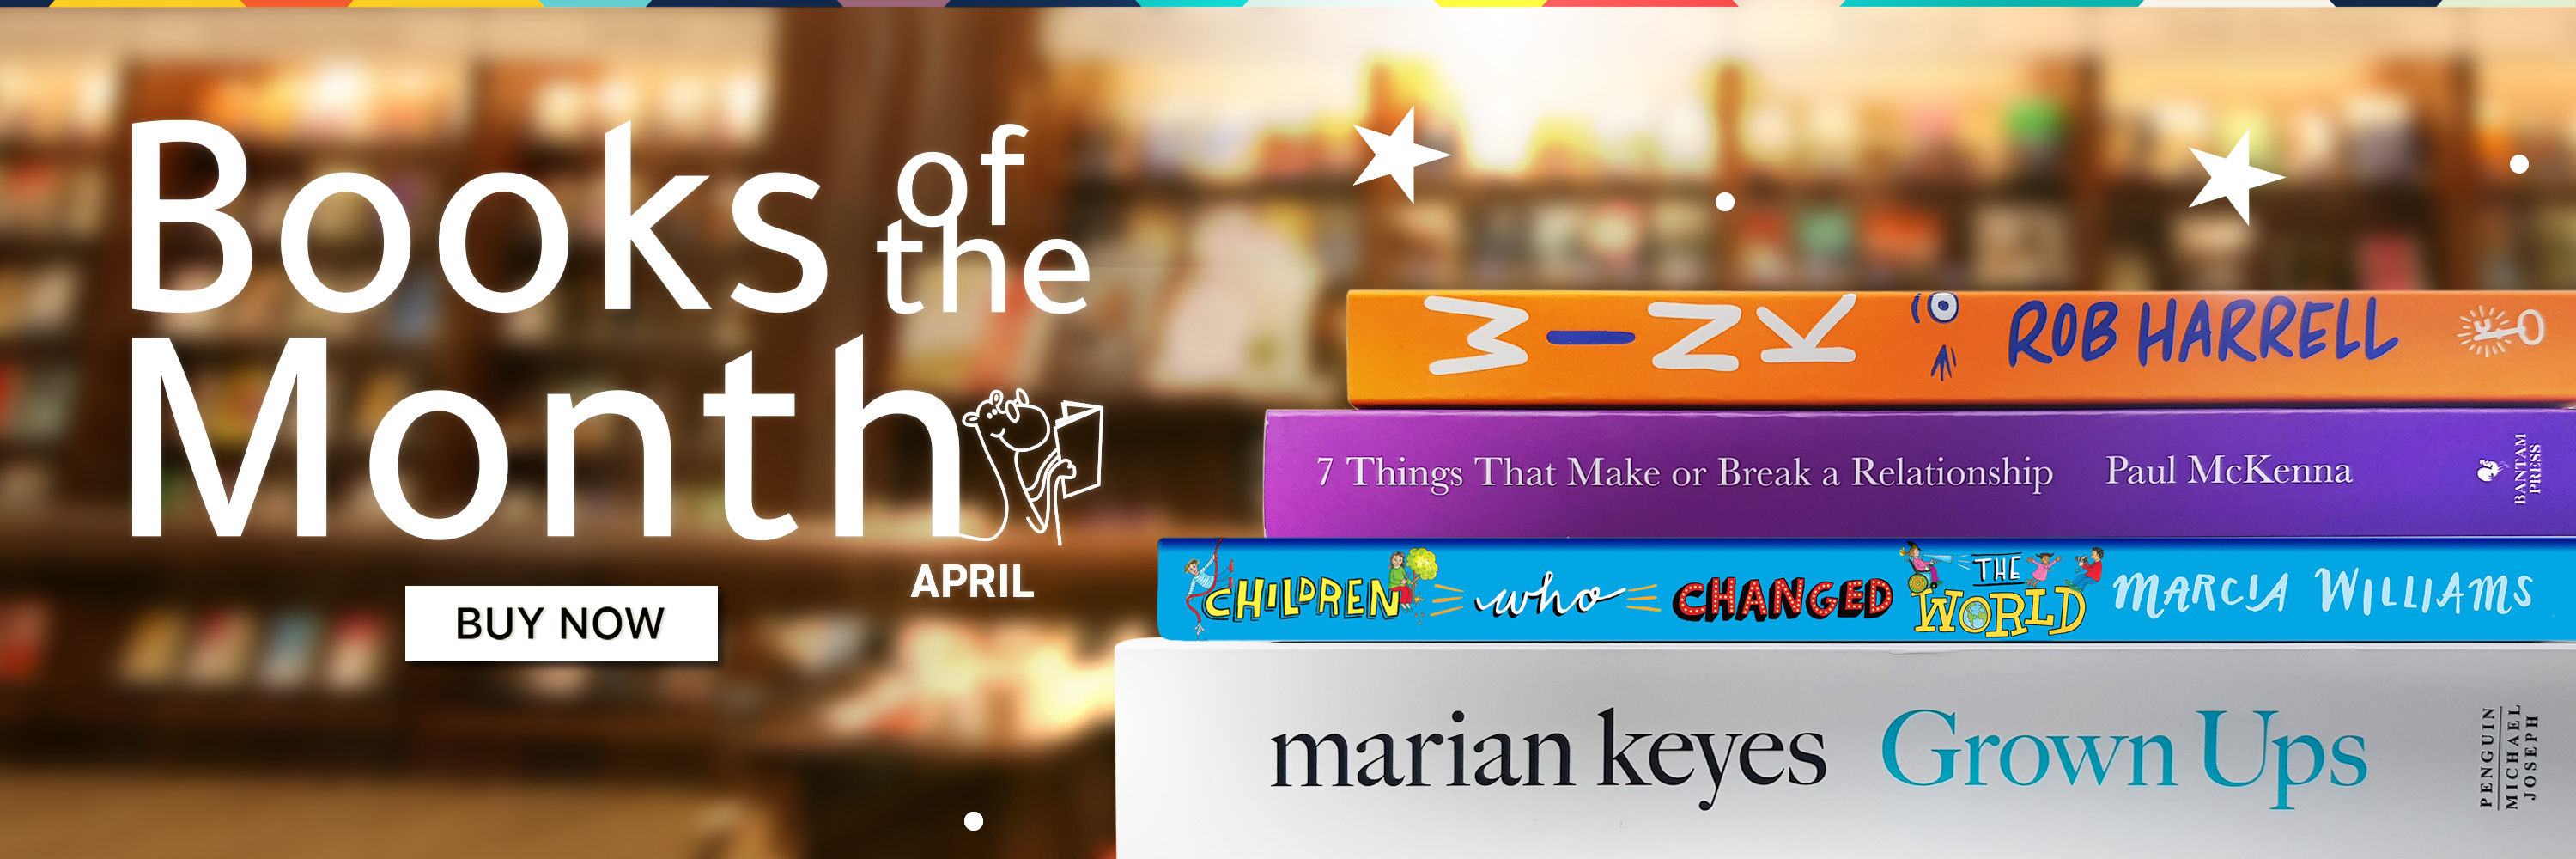 Books of the Month - 3000x1000